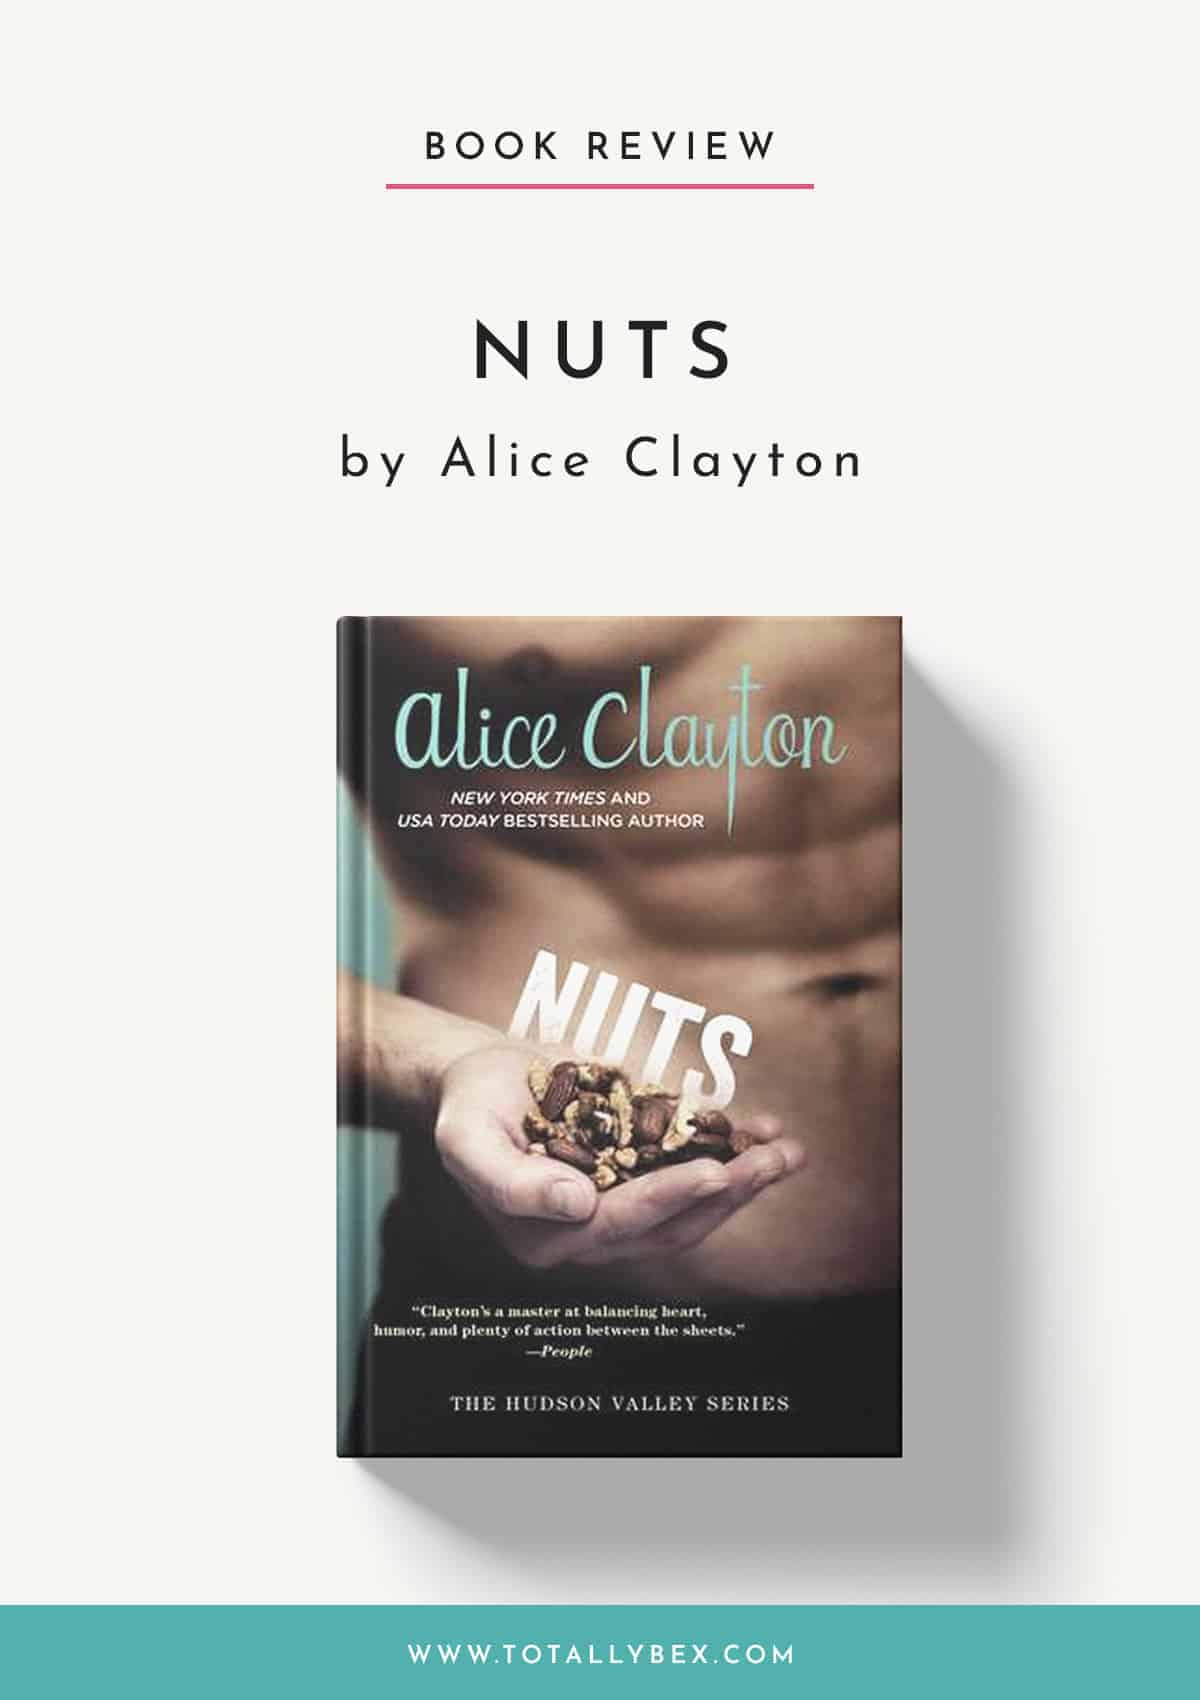 Nuts by Alice Clayton-Book Review